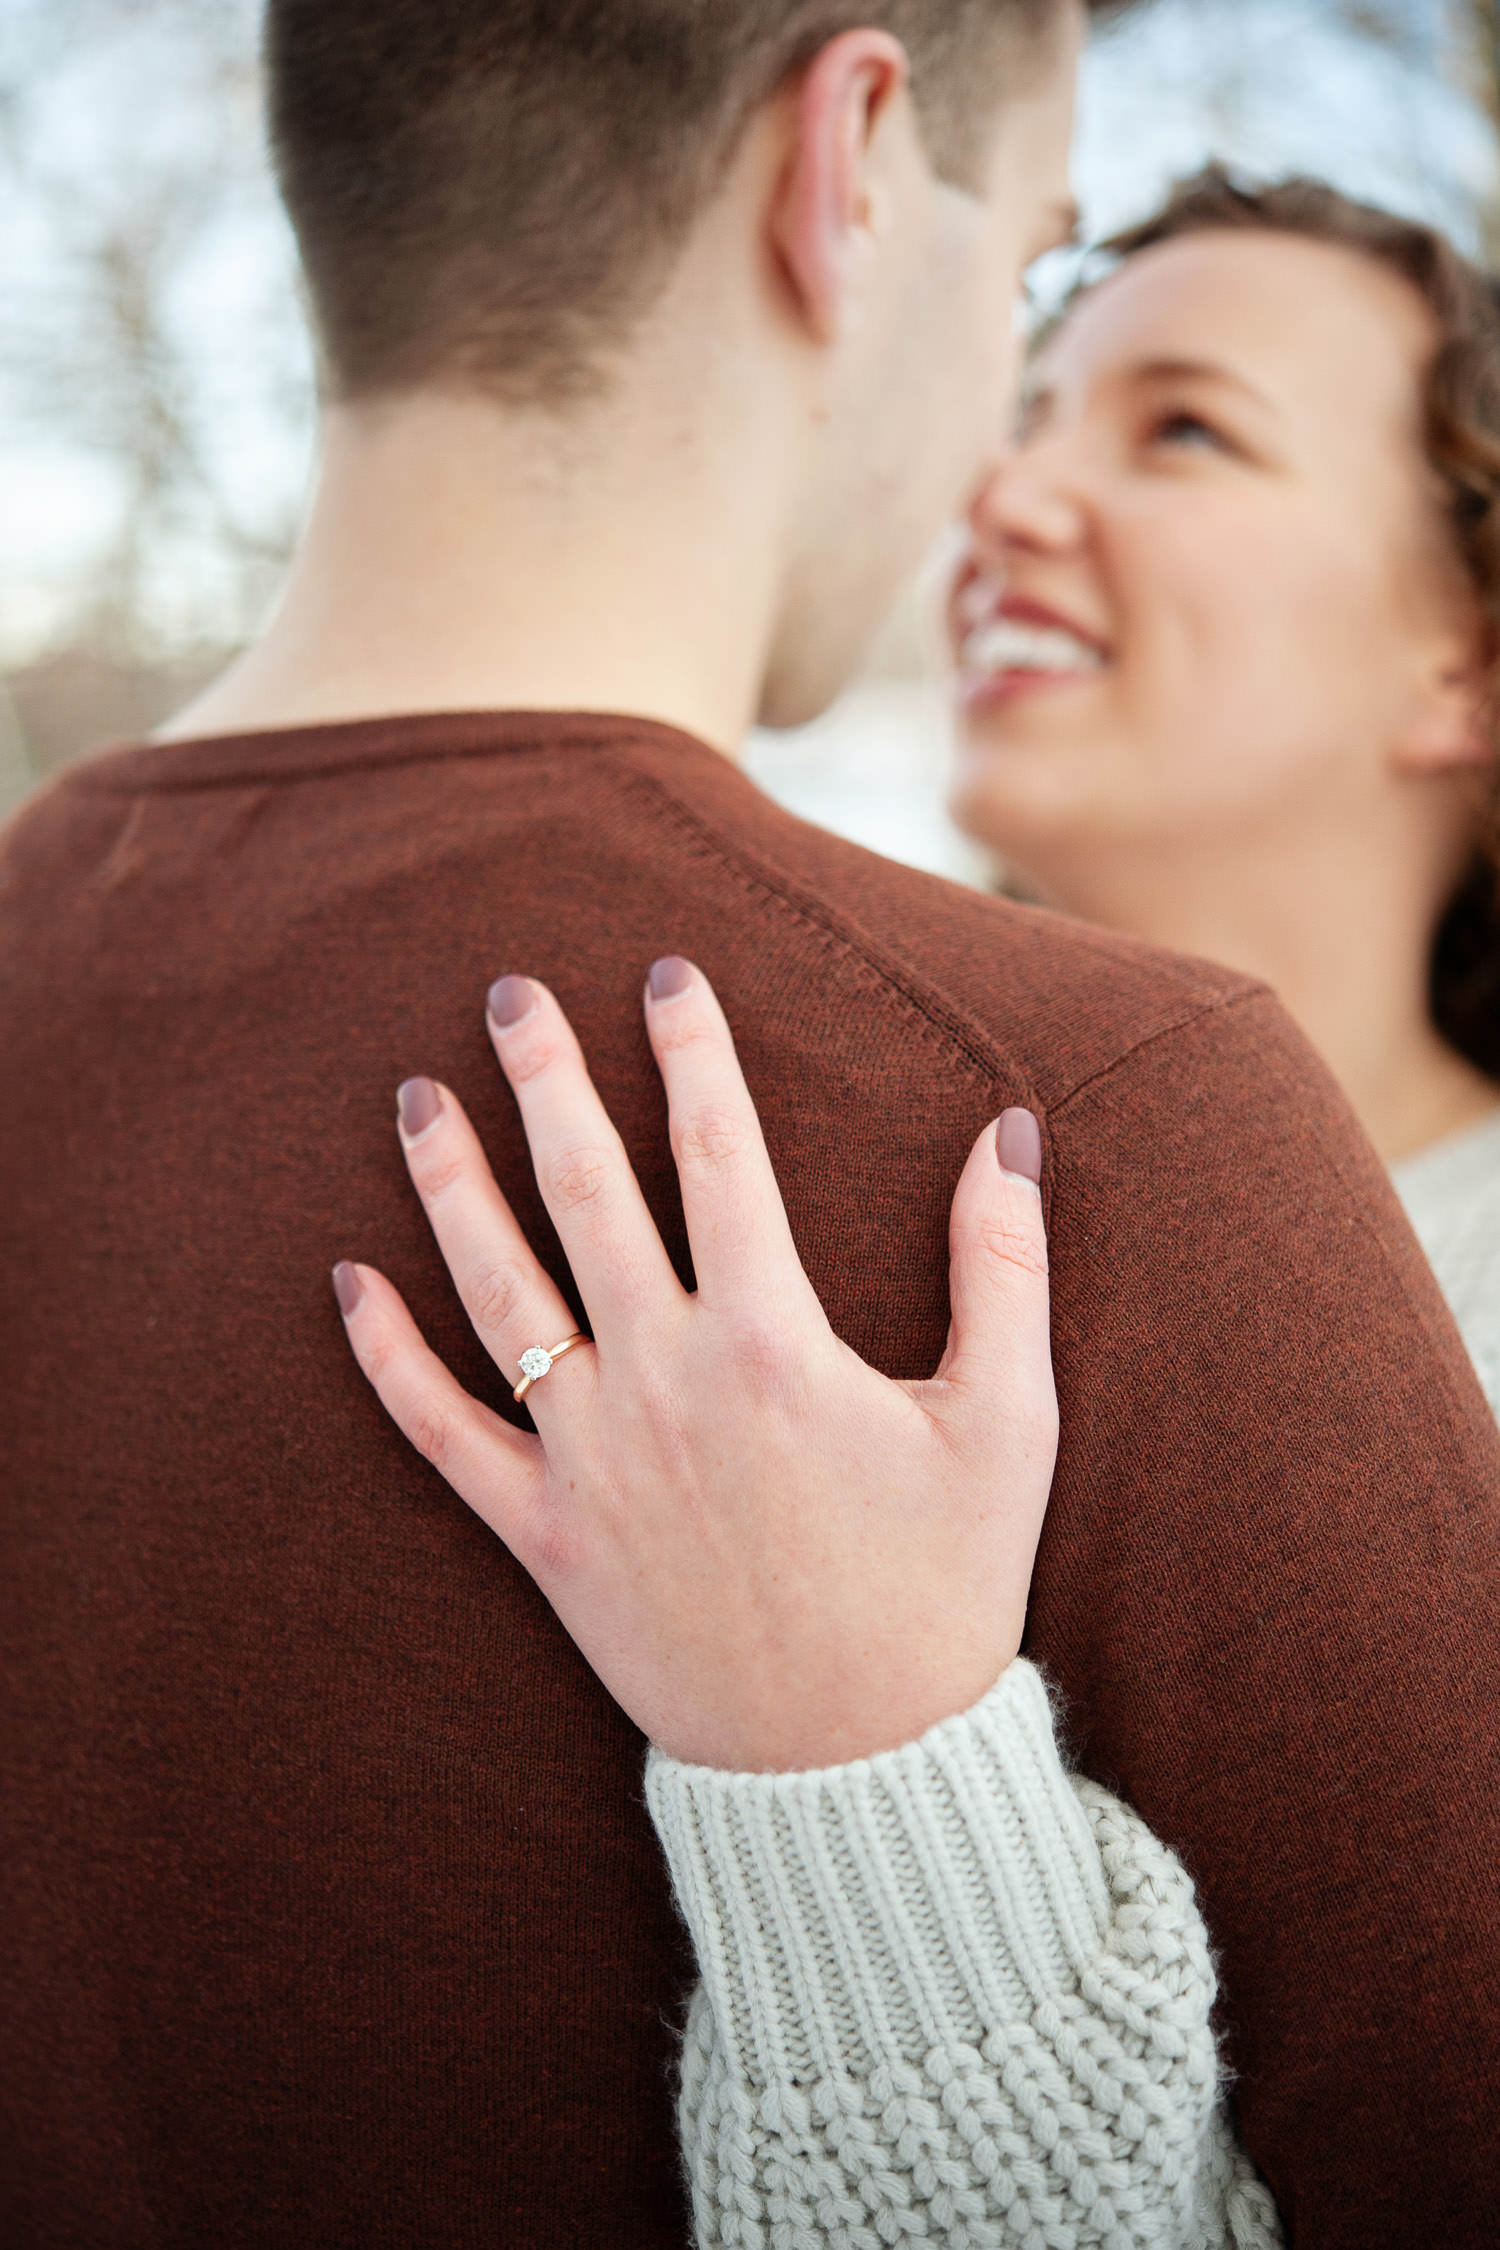 Engagement ring shot during winter engagement session captured by Tara Whittaker Photography